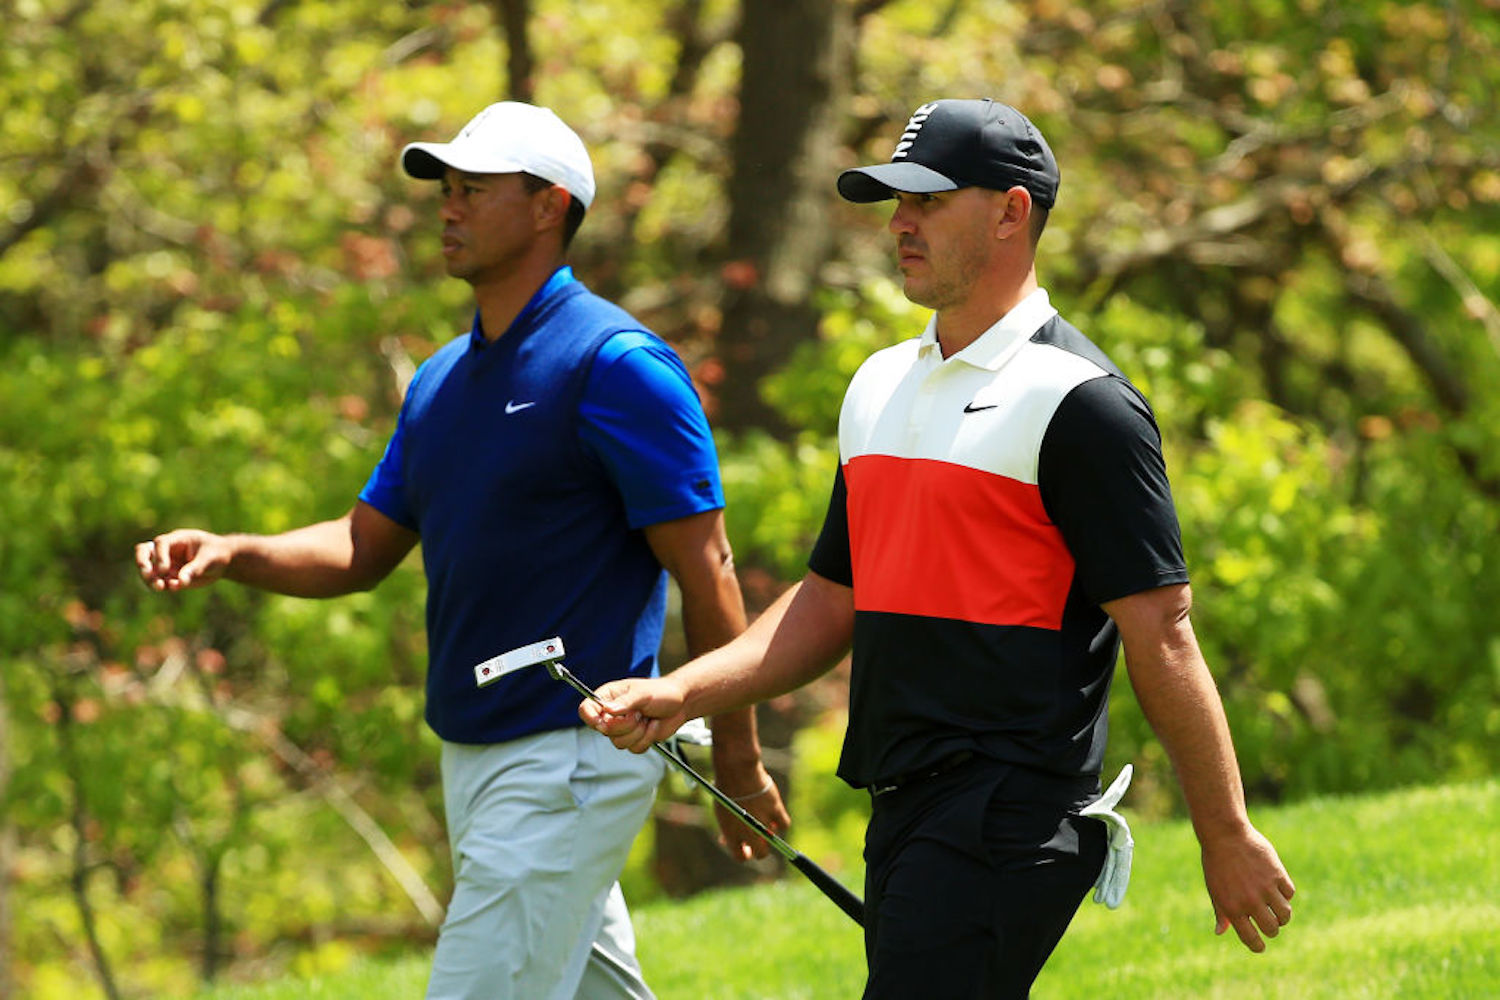 2020 PGA Championship: Odds, Best Bets, and Longshots to Target at TPC Harding Park